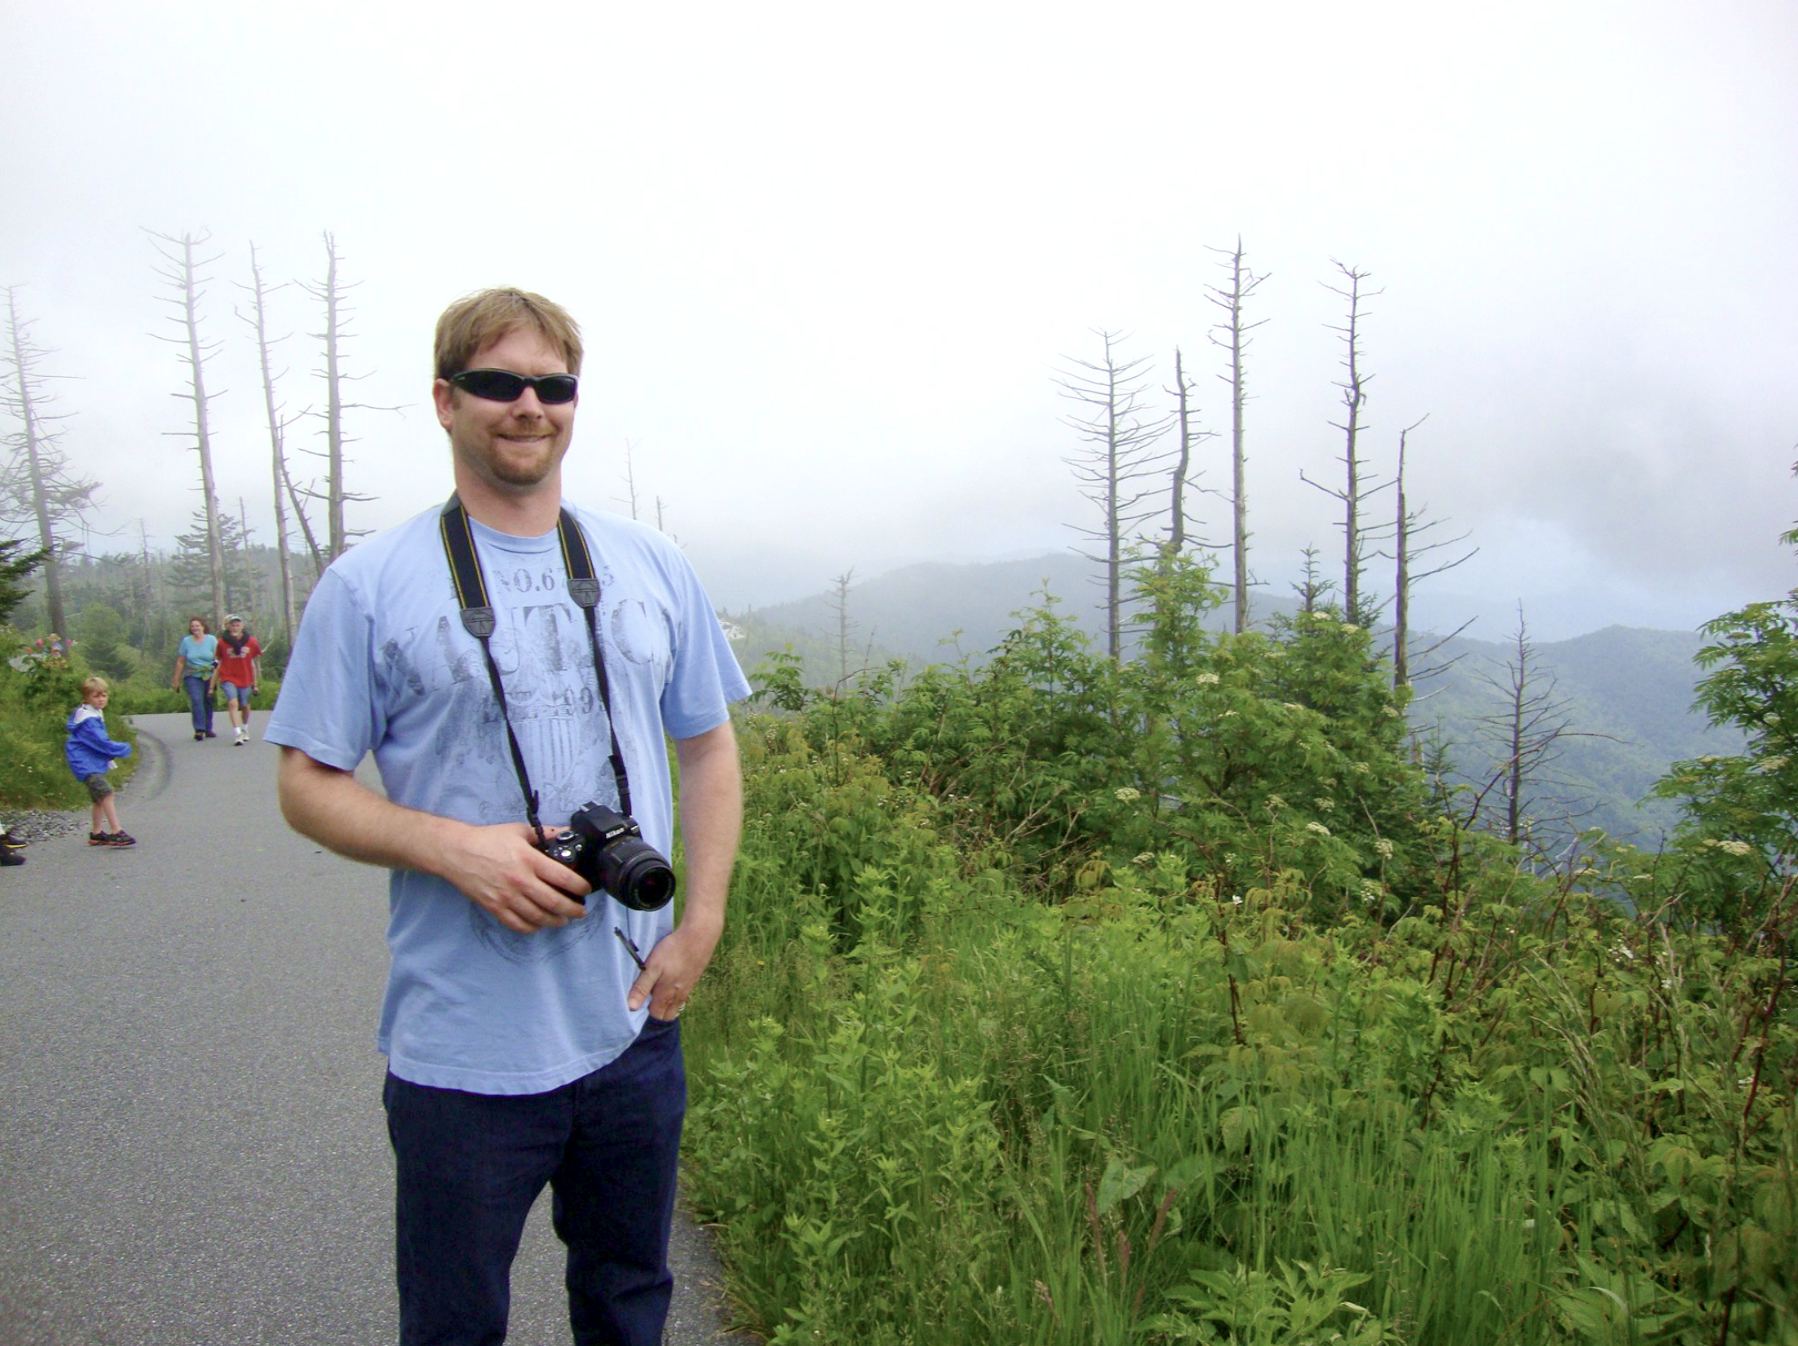 Taking a hike at the Great Smoky Mountains in Pigeon Forge, TN